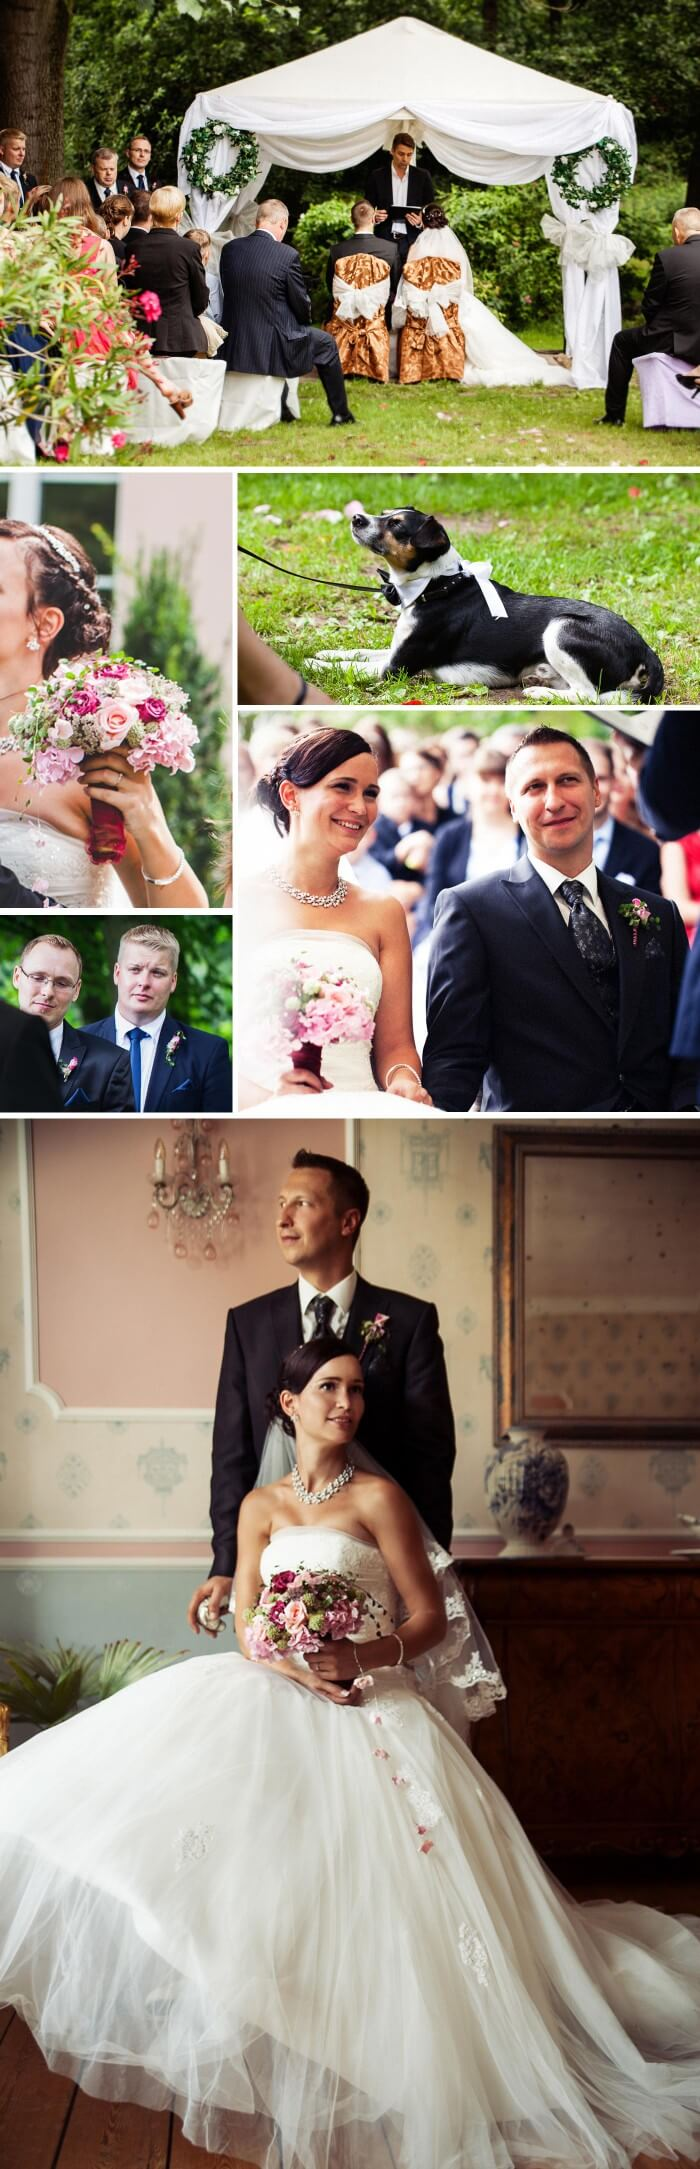 1632424766 818 English wedding in the castle 2 charming photo stories - English wedding in the castle   2 charming photo stories with many inspirations